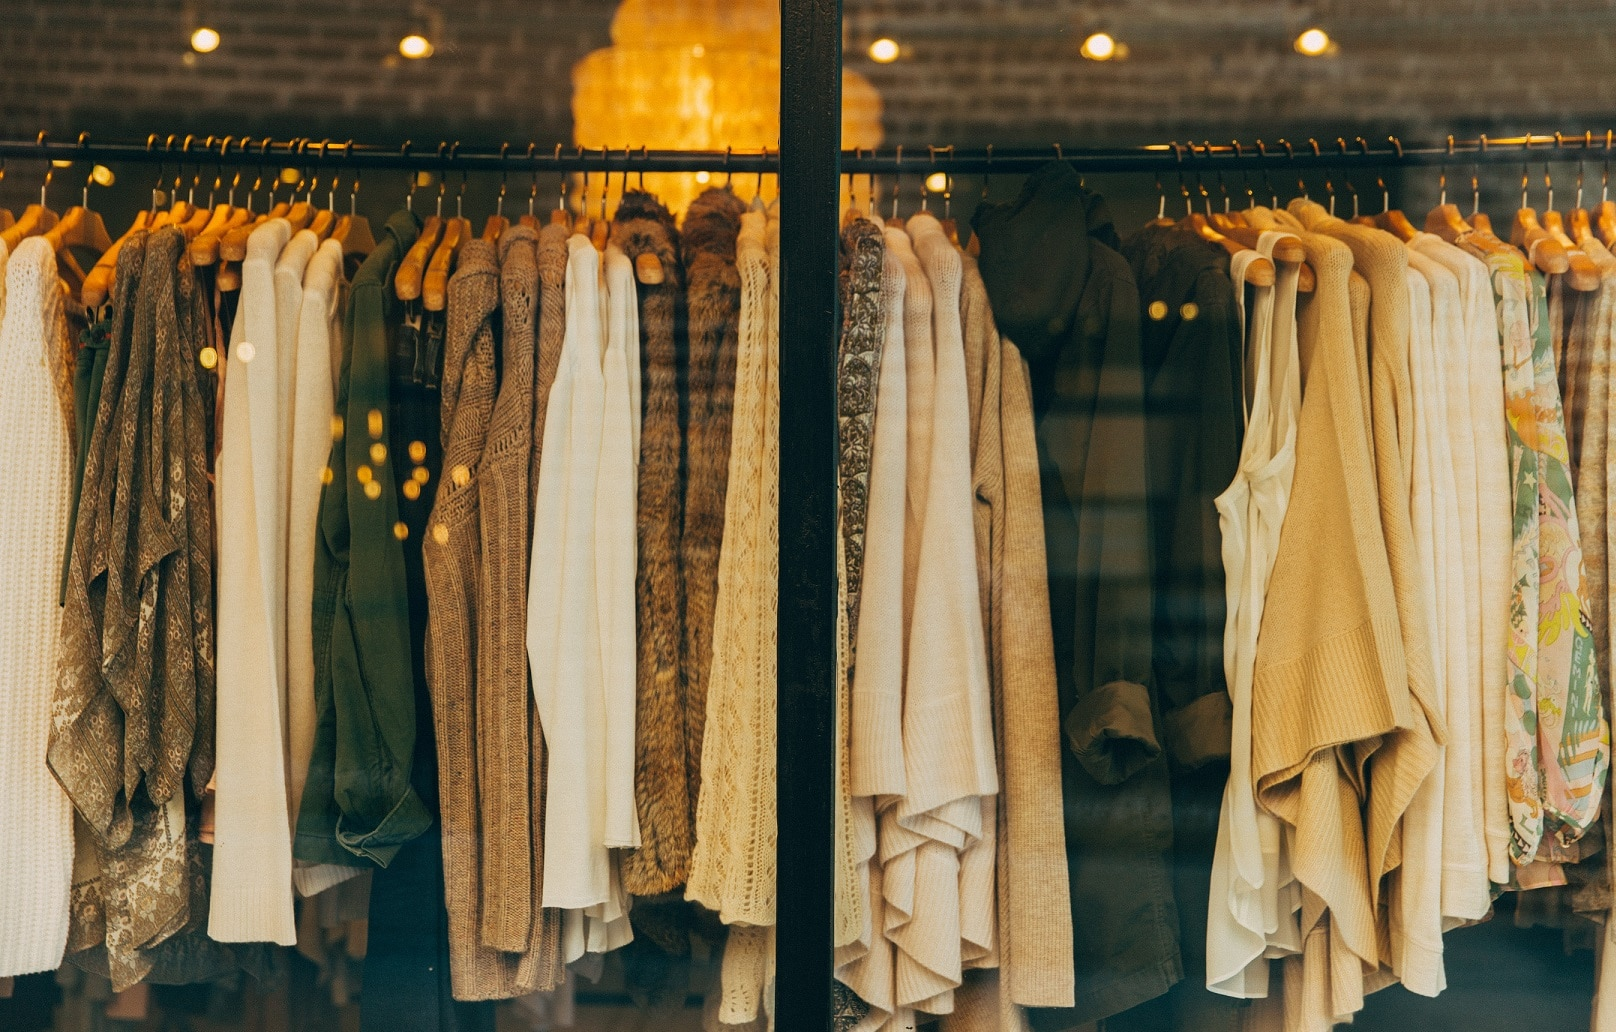 Clothes haning on a rack